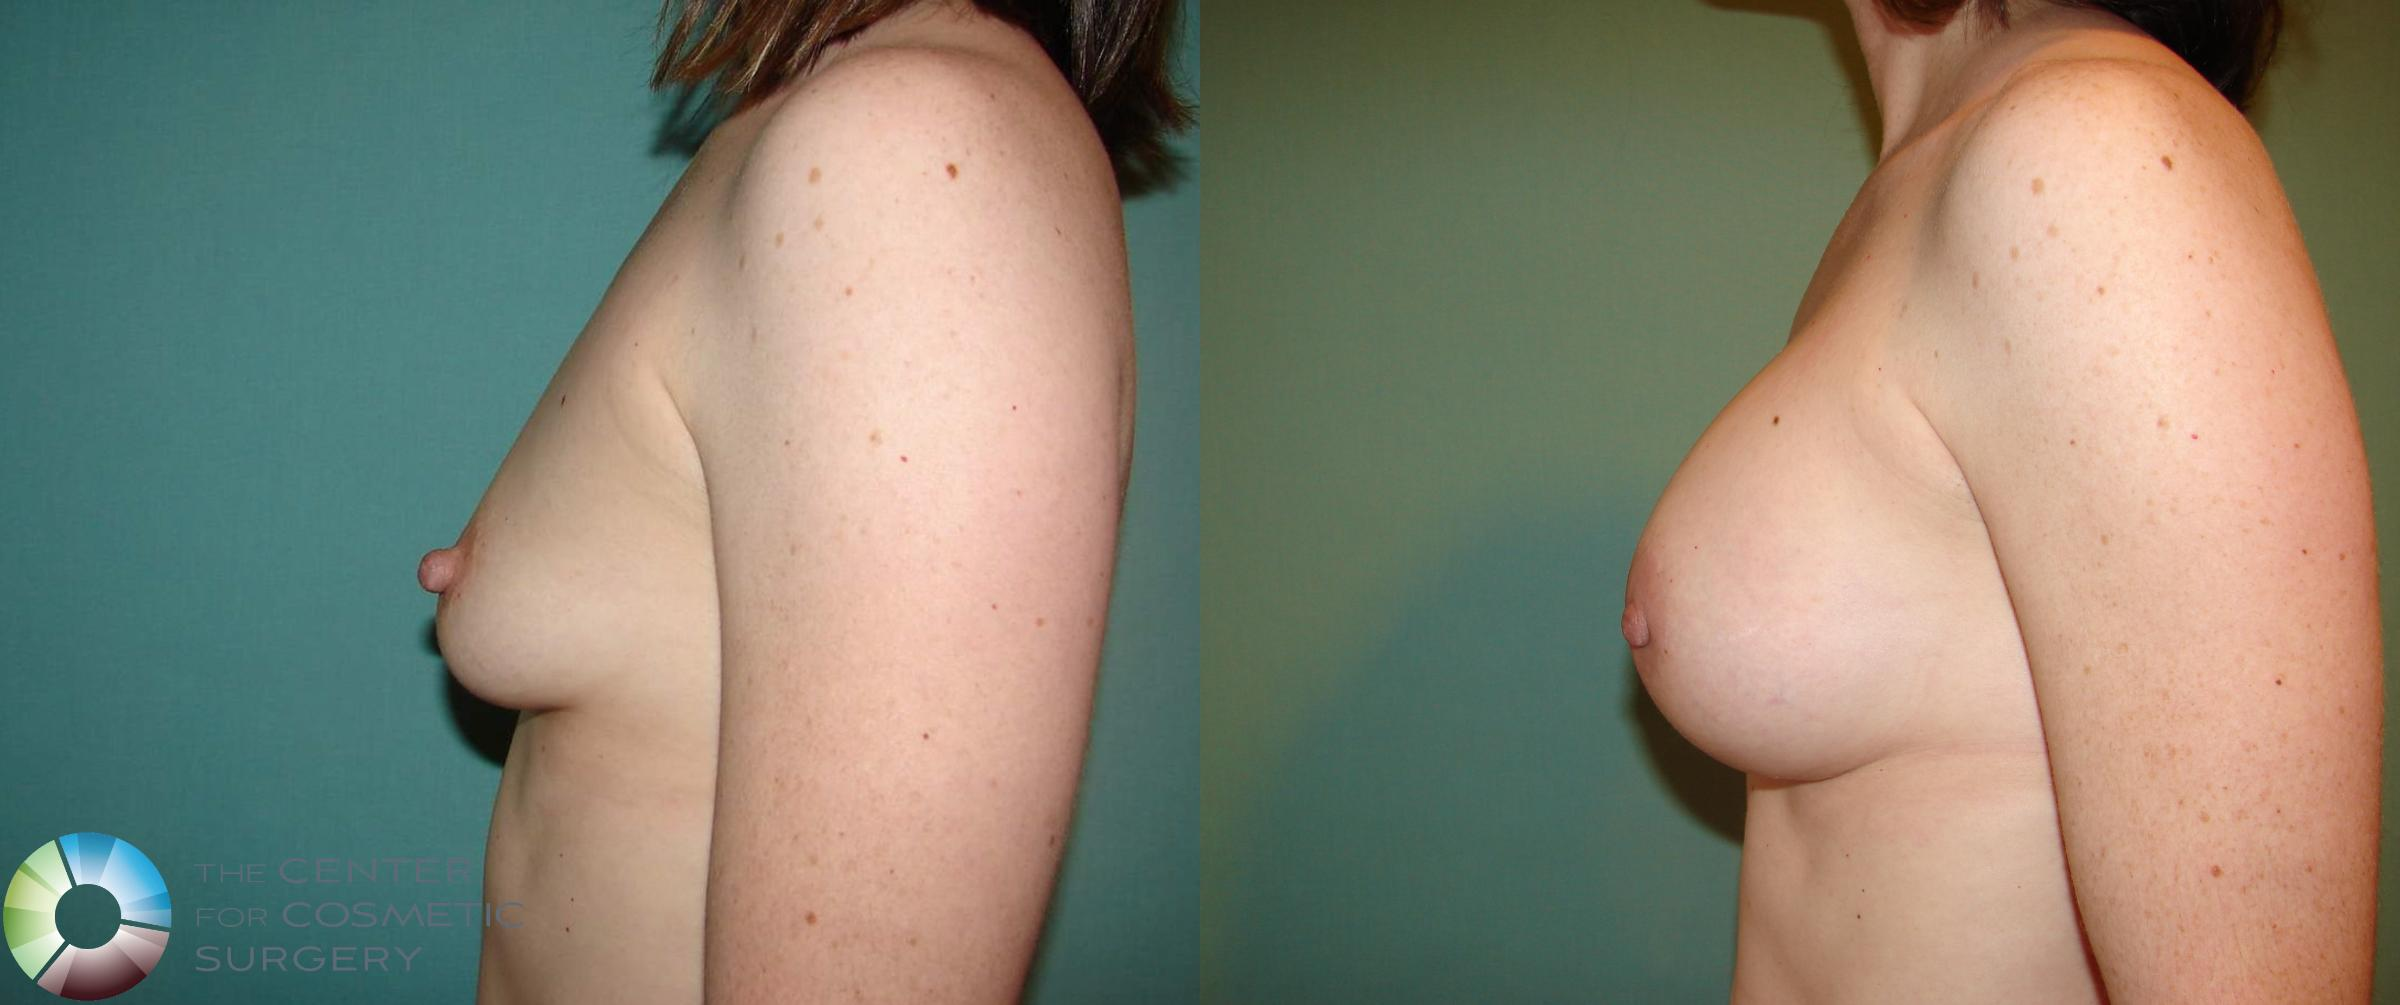 Breast Augmentation Case 529 Before & After View #7 | Golden, CO | The Center for Cosmetic Surgery